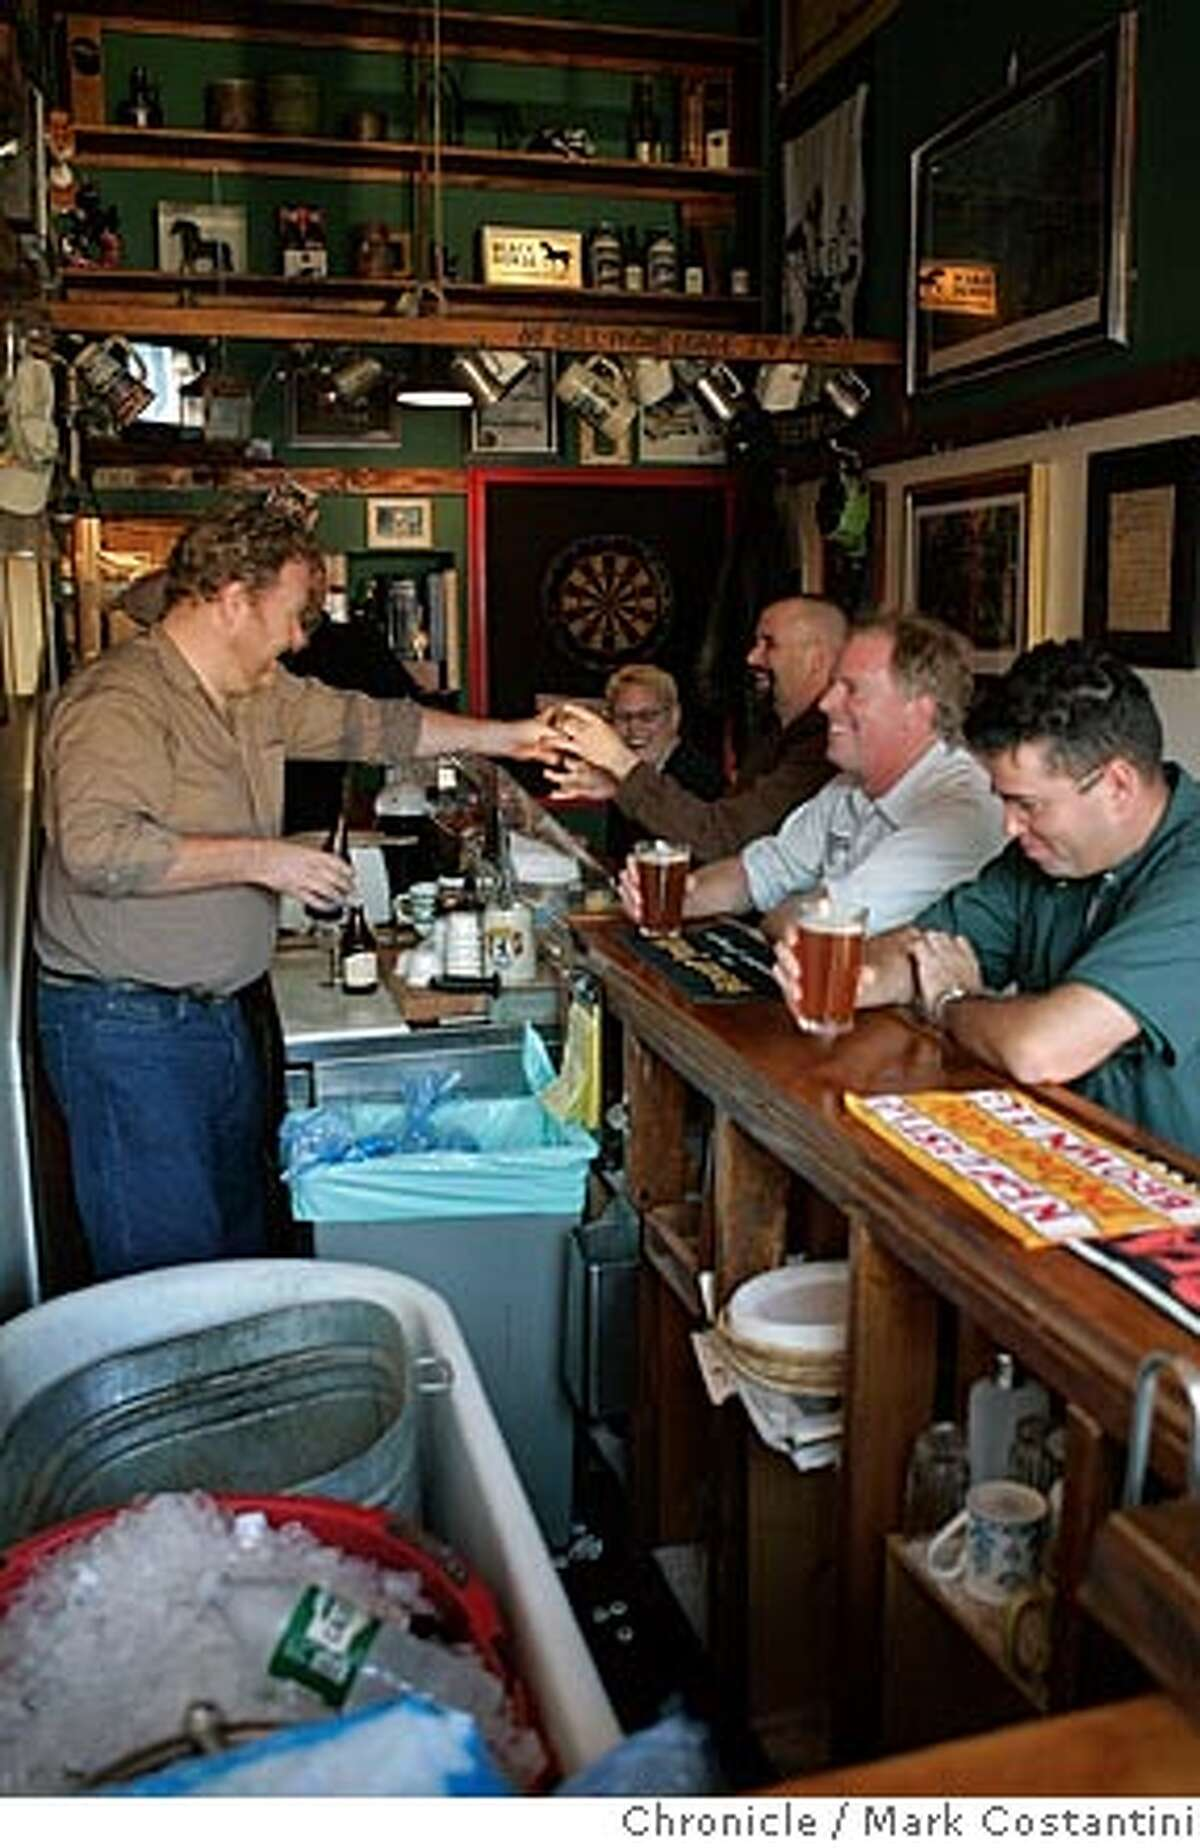 GET COZY: tiny San Francisco restaurants, bars, and cafes to loveThe Black Horse London Pub: Known as SF's smallest pub at about 150 sq. ft.1514 Union St.